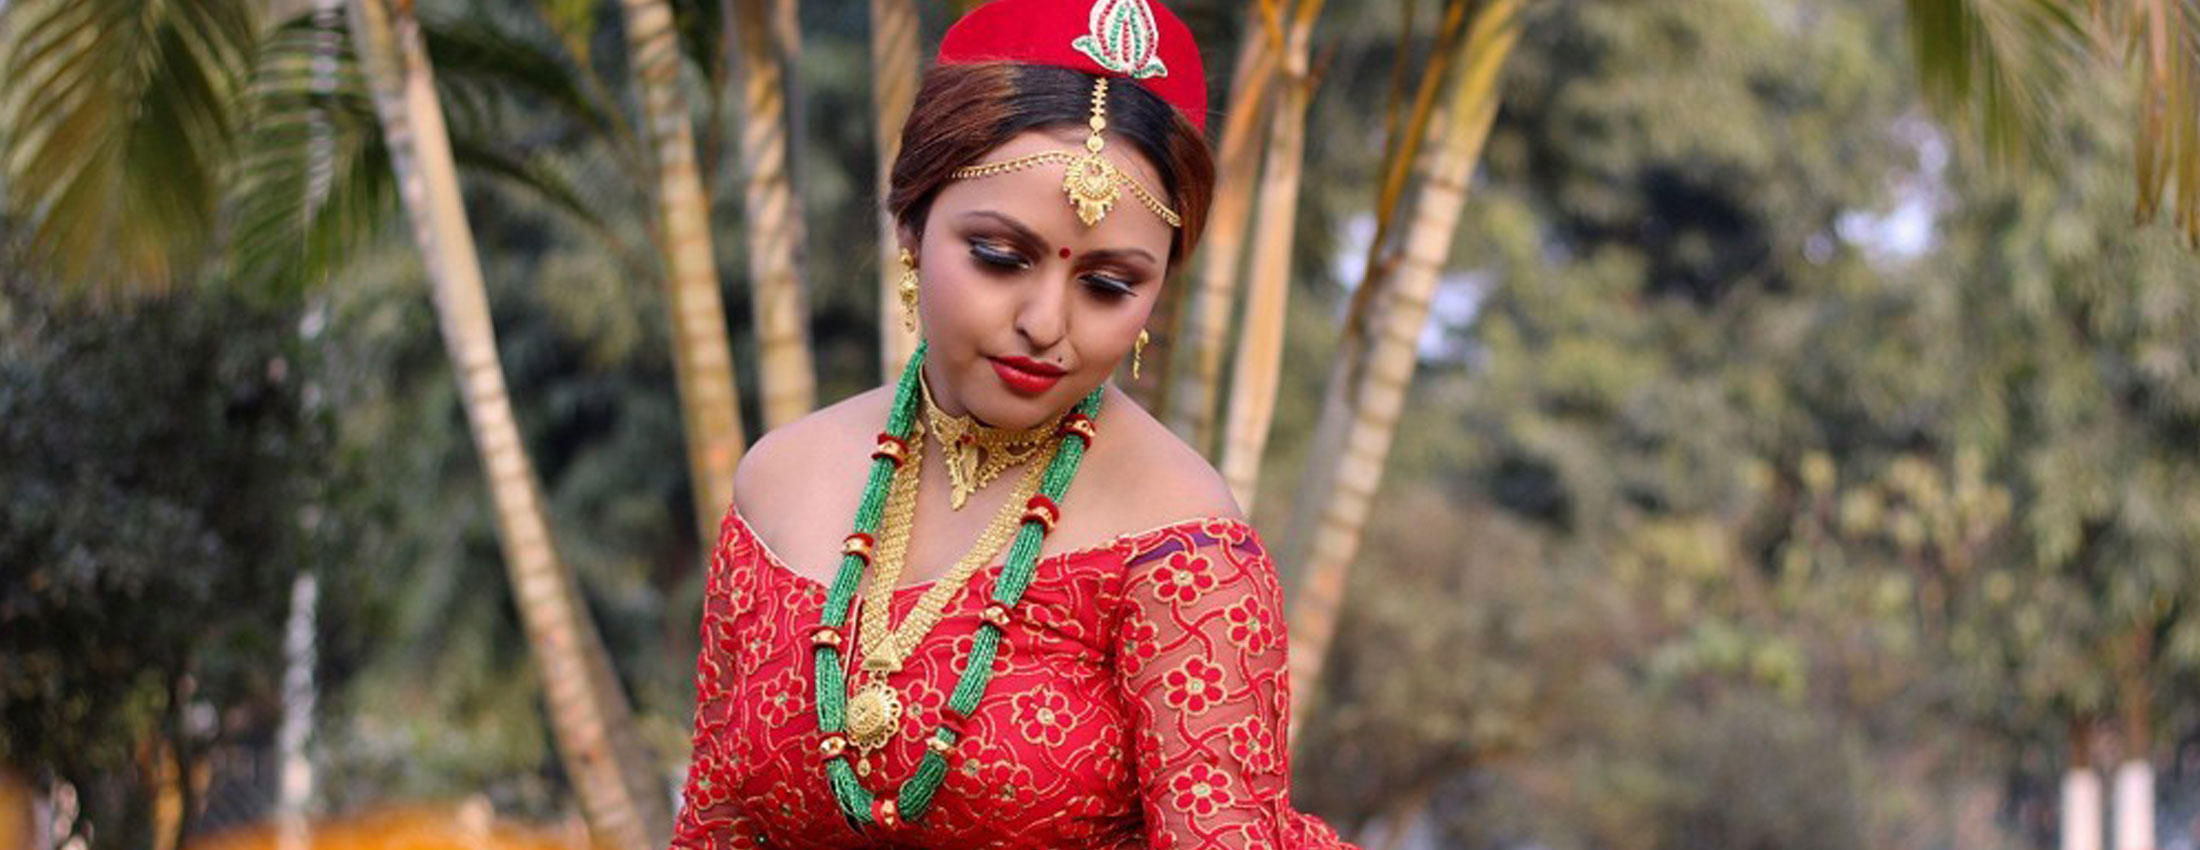 Smriti Wedding Photoshoot - Imgstock, Biratnagar